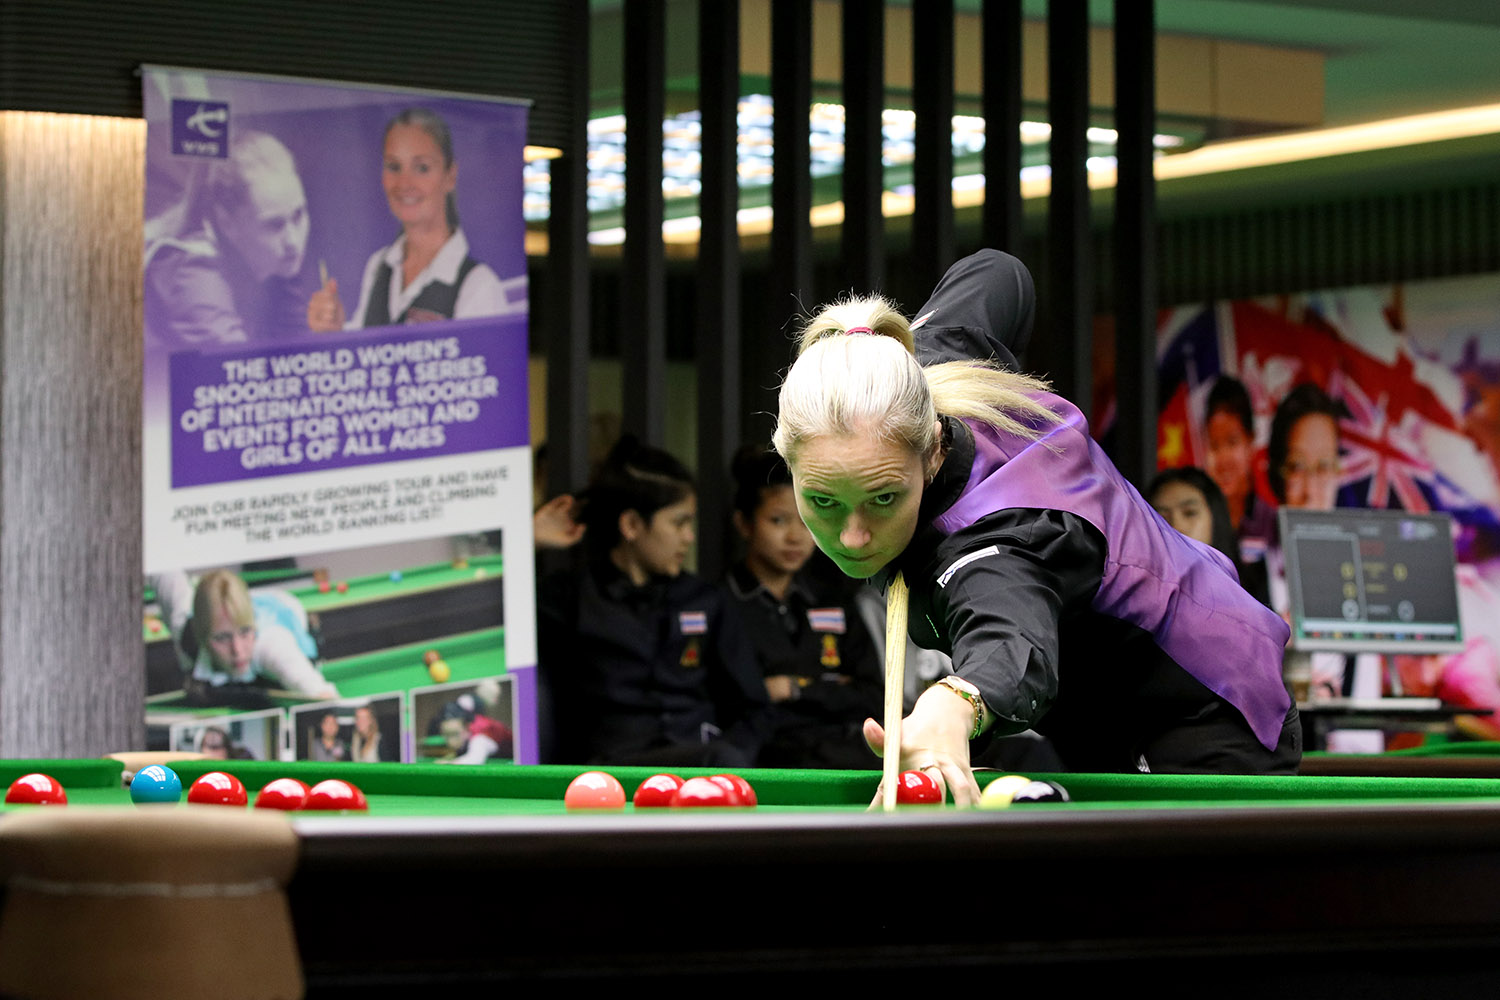 New Website for World Women's Snooker!